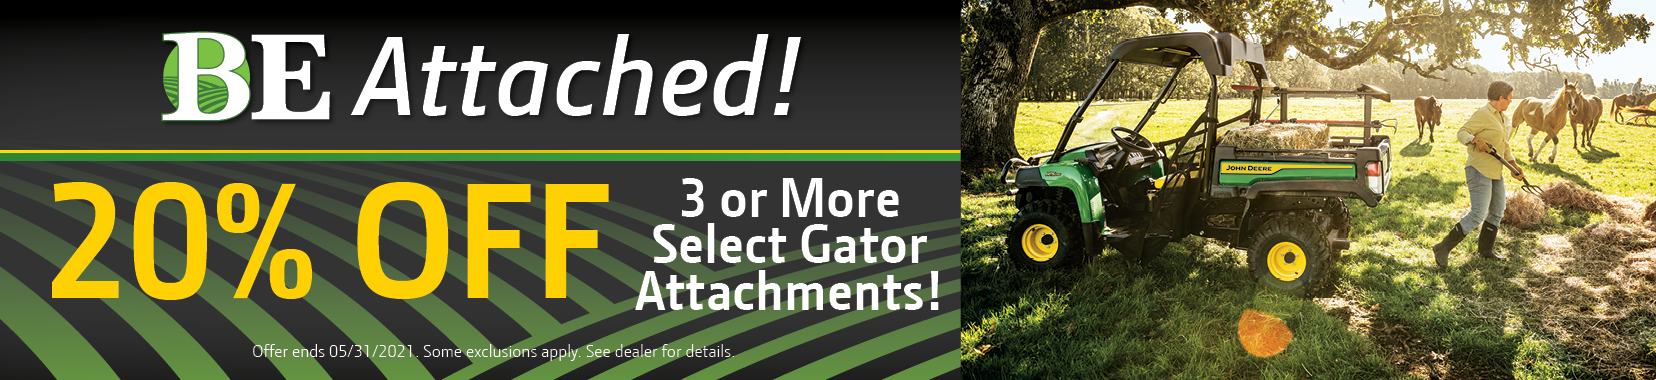 20% off 3 or more select gator attachments